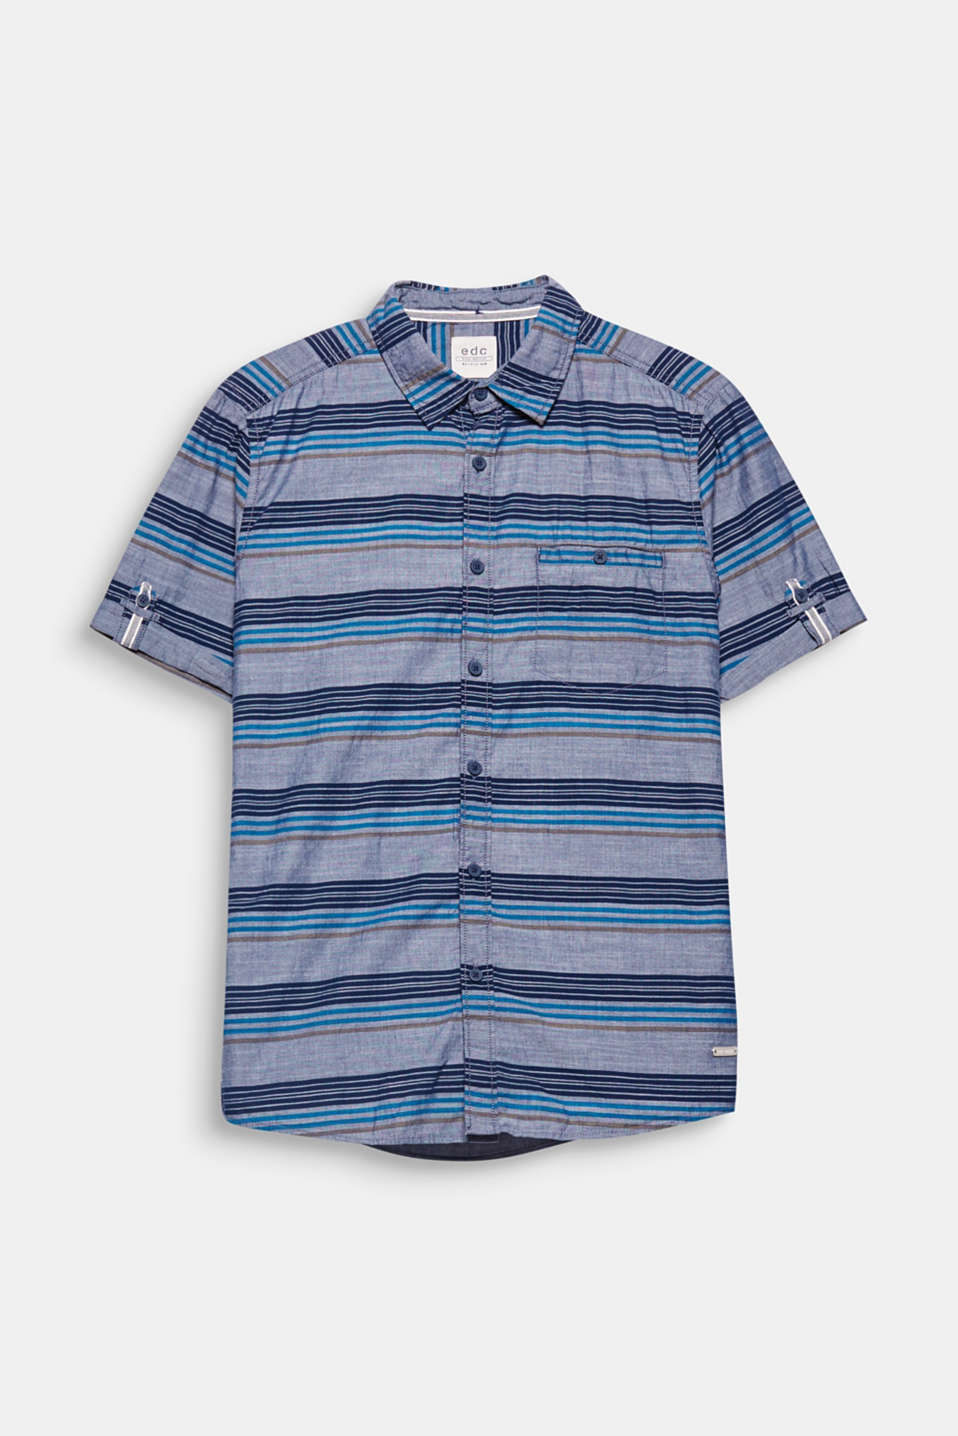 Slightly mottled chambray fabric with tonal stripes give this shirt a summery flair.